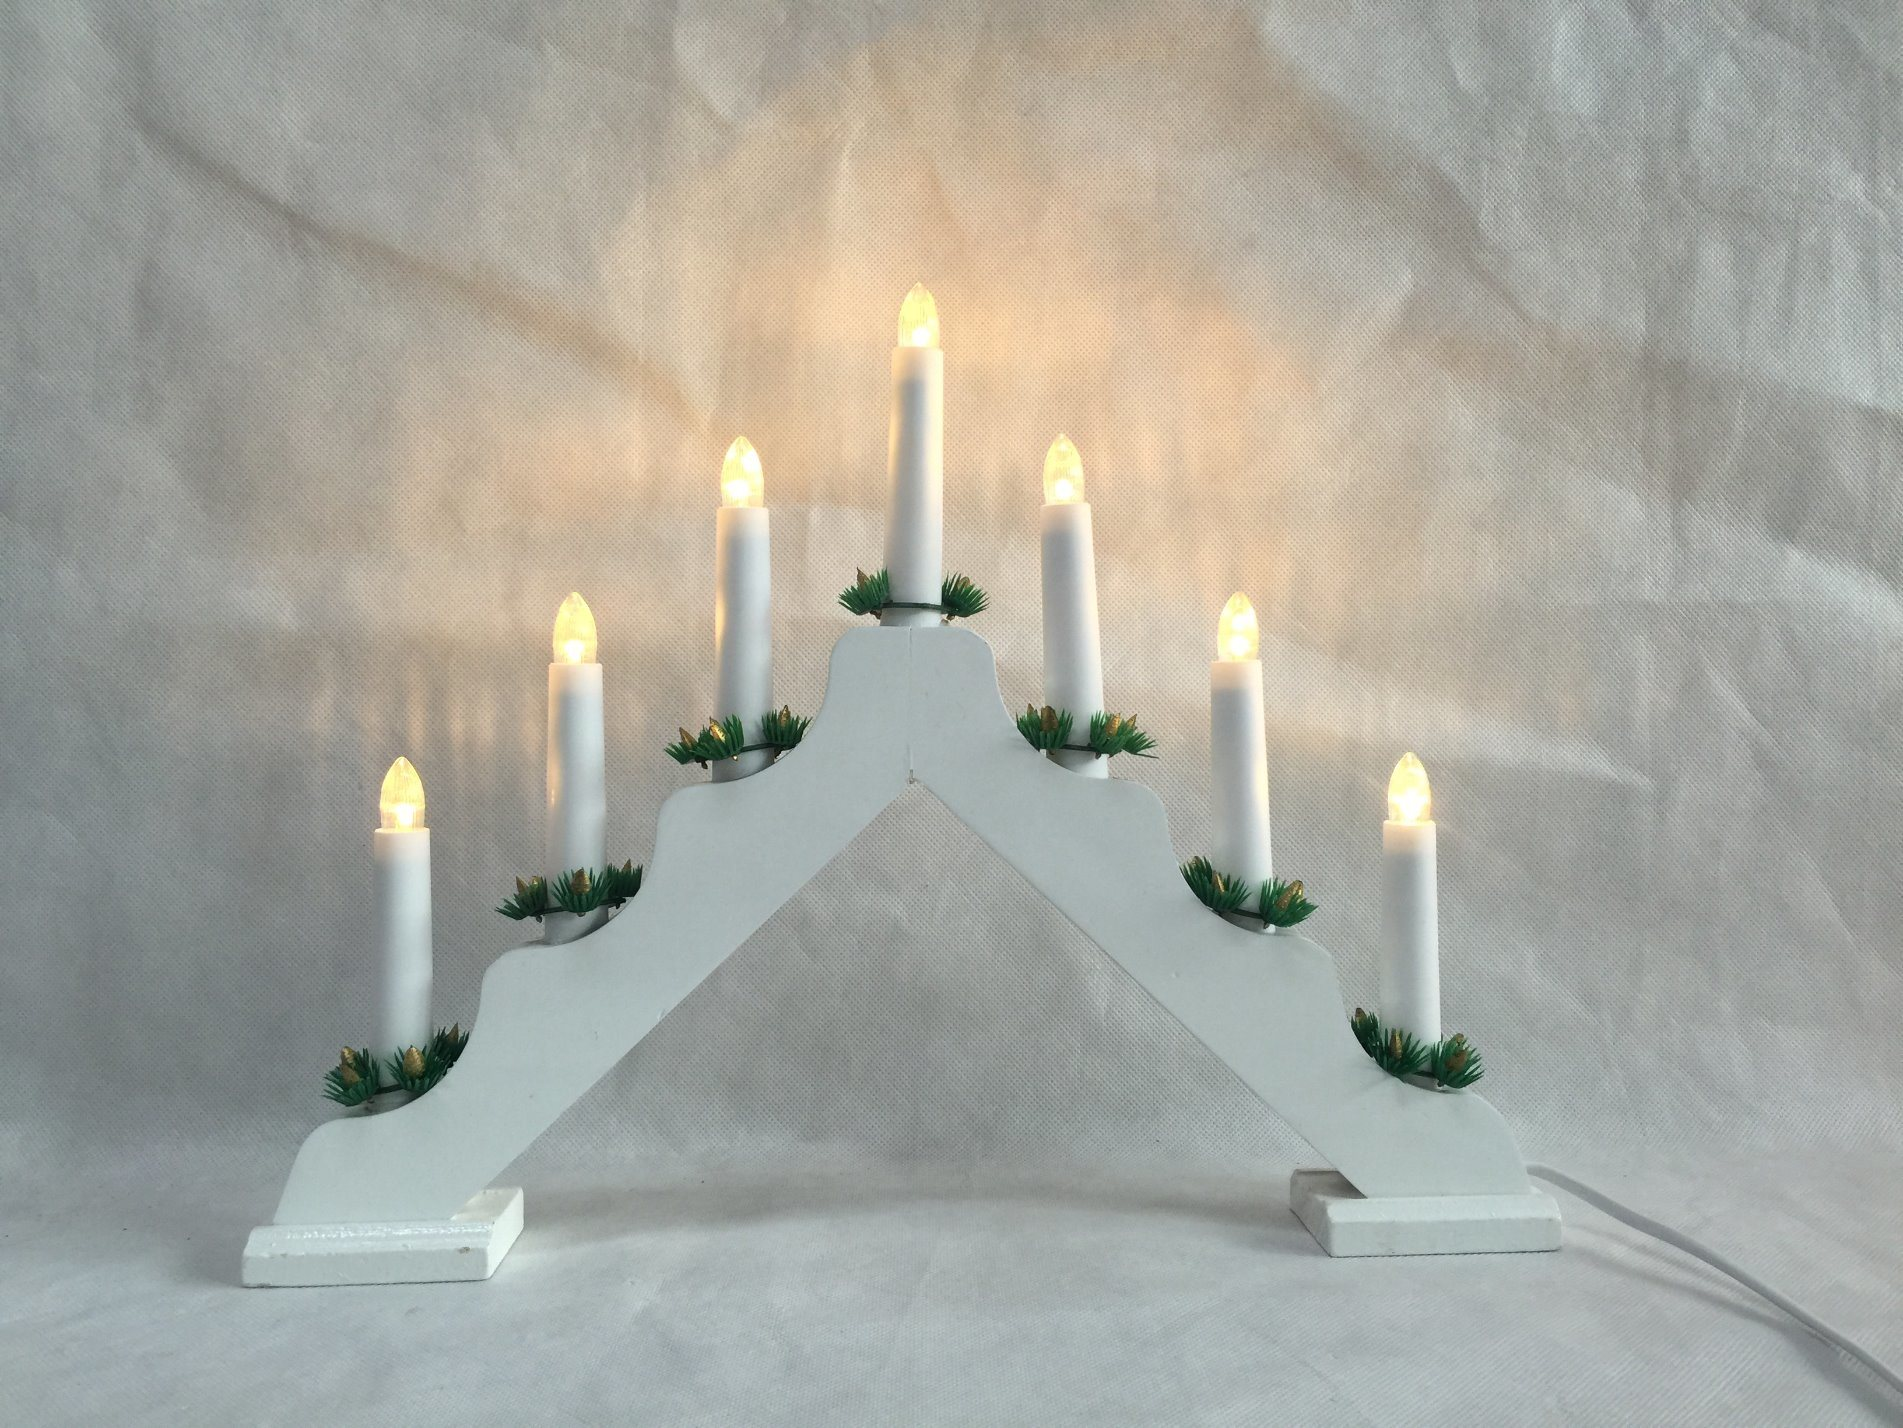 Red or White Bridge Candle LED Lighting Christmas Decoration